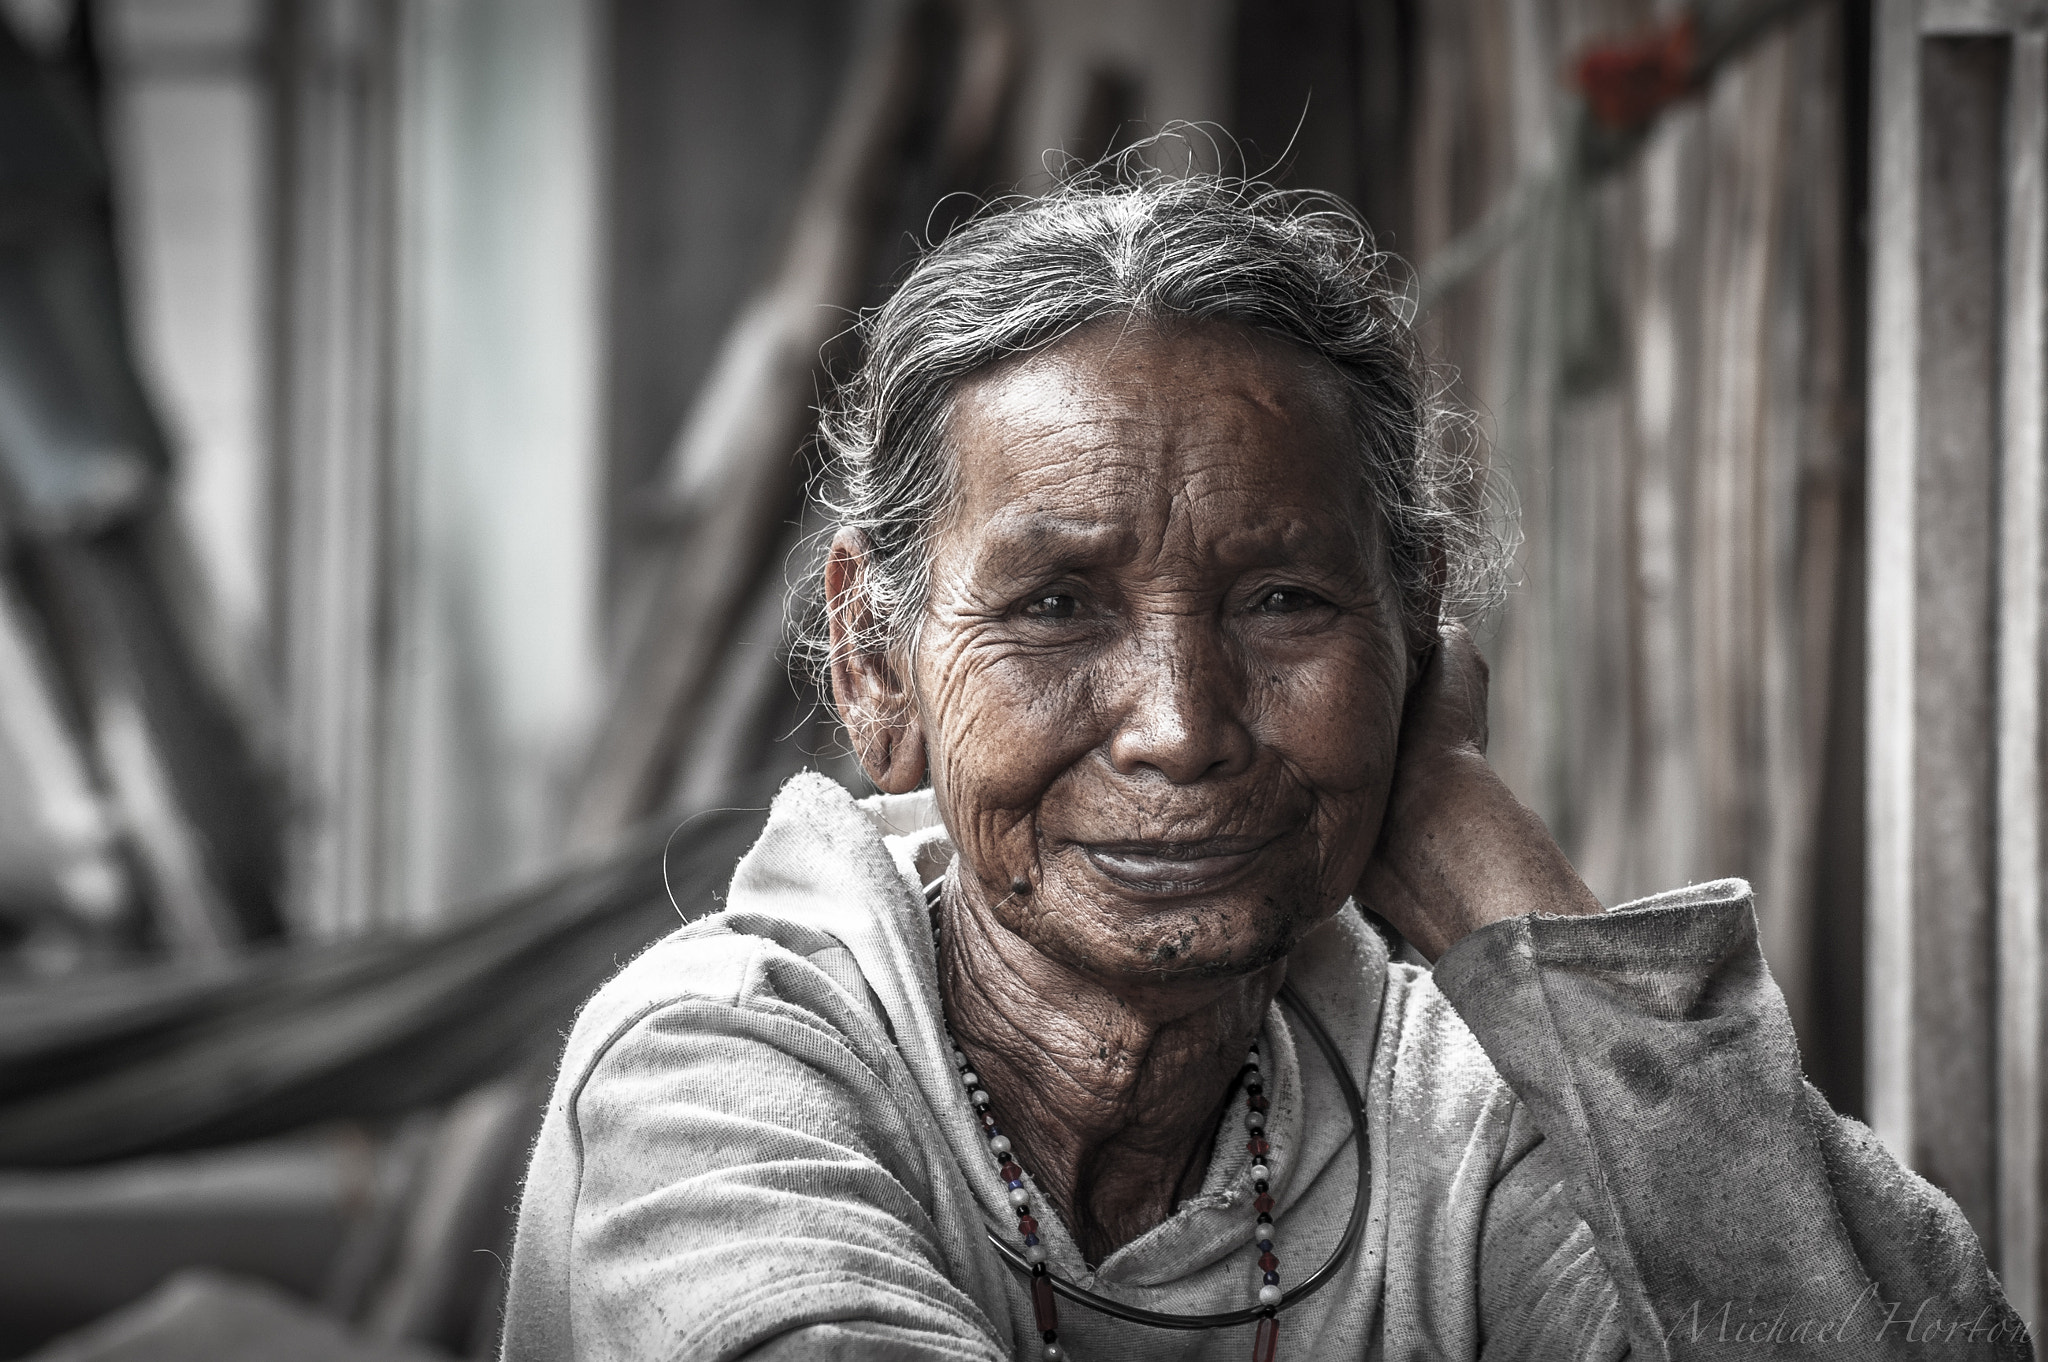 Photograph The Aging Faces of Vietnam by Michael Horton on 500px